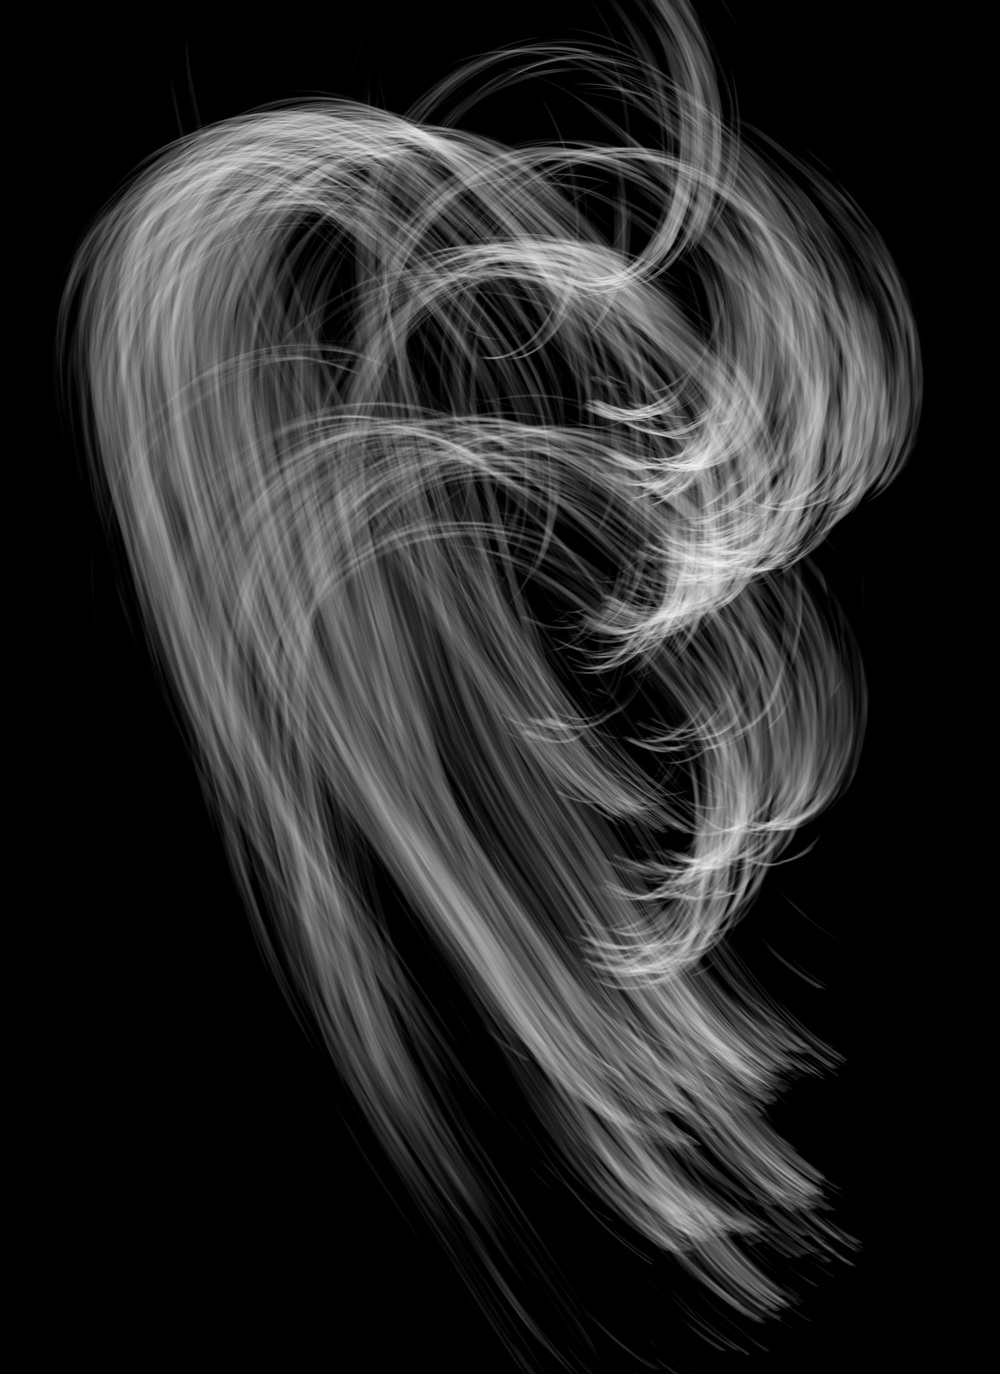 Movement II , 2012 Archival Pigment Print 30 x 22 inches